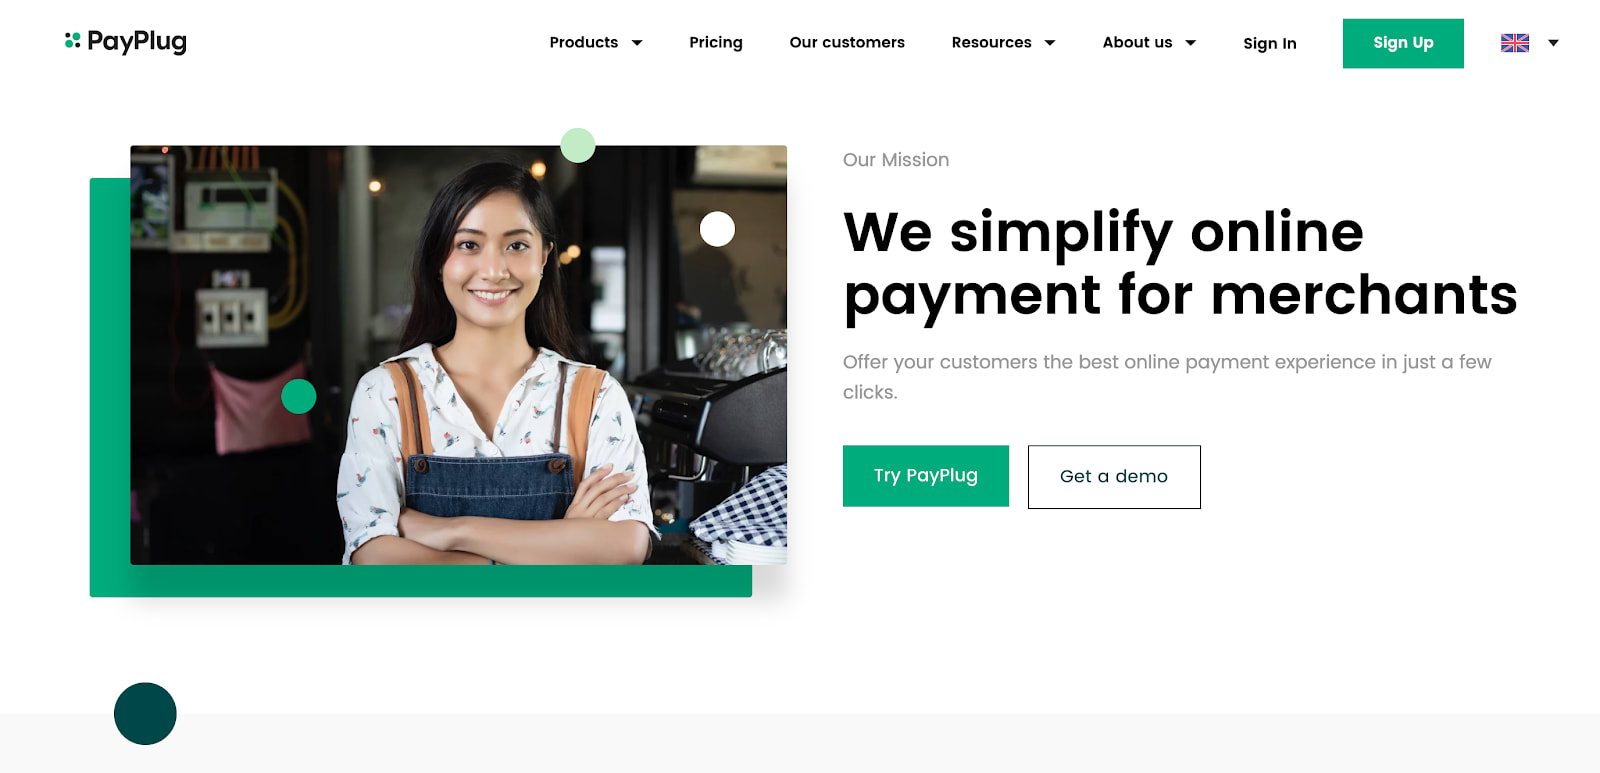 Offer your customers the best online payment experience in just a few clicks. Accept credit card payments in just a few clicks, online and in stores. PayPlug is a French payment solution for SMEs, selling their products in stores and online. Without VAD contract, without installation costs, without commitment. Today, more than 10,000 e-merchants in Europe trust us, and we can count on more than 300 partners! PayPlug simplifies the collection of online payments, by offering a simple and innovative interface and functionalities. Installing the solution and monitoring payments on a daily basis does not require any particular expertise.